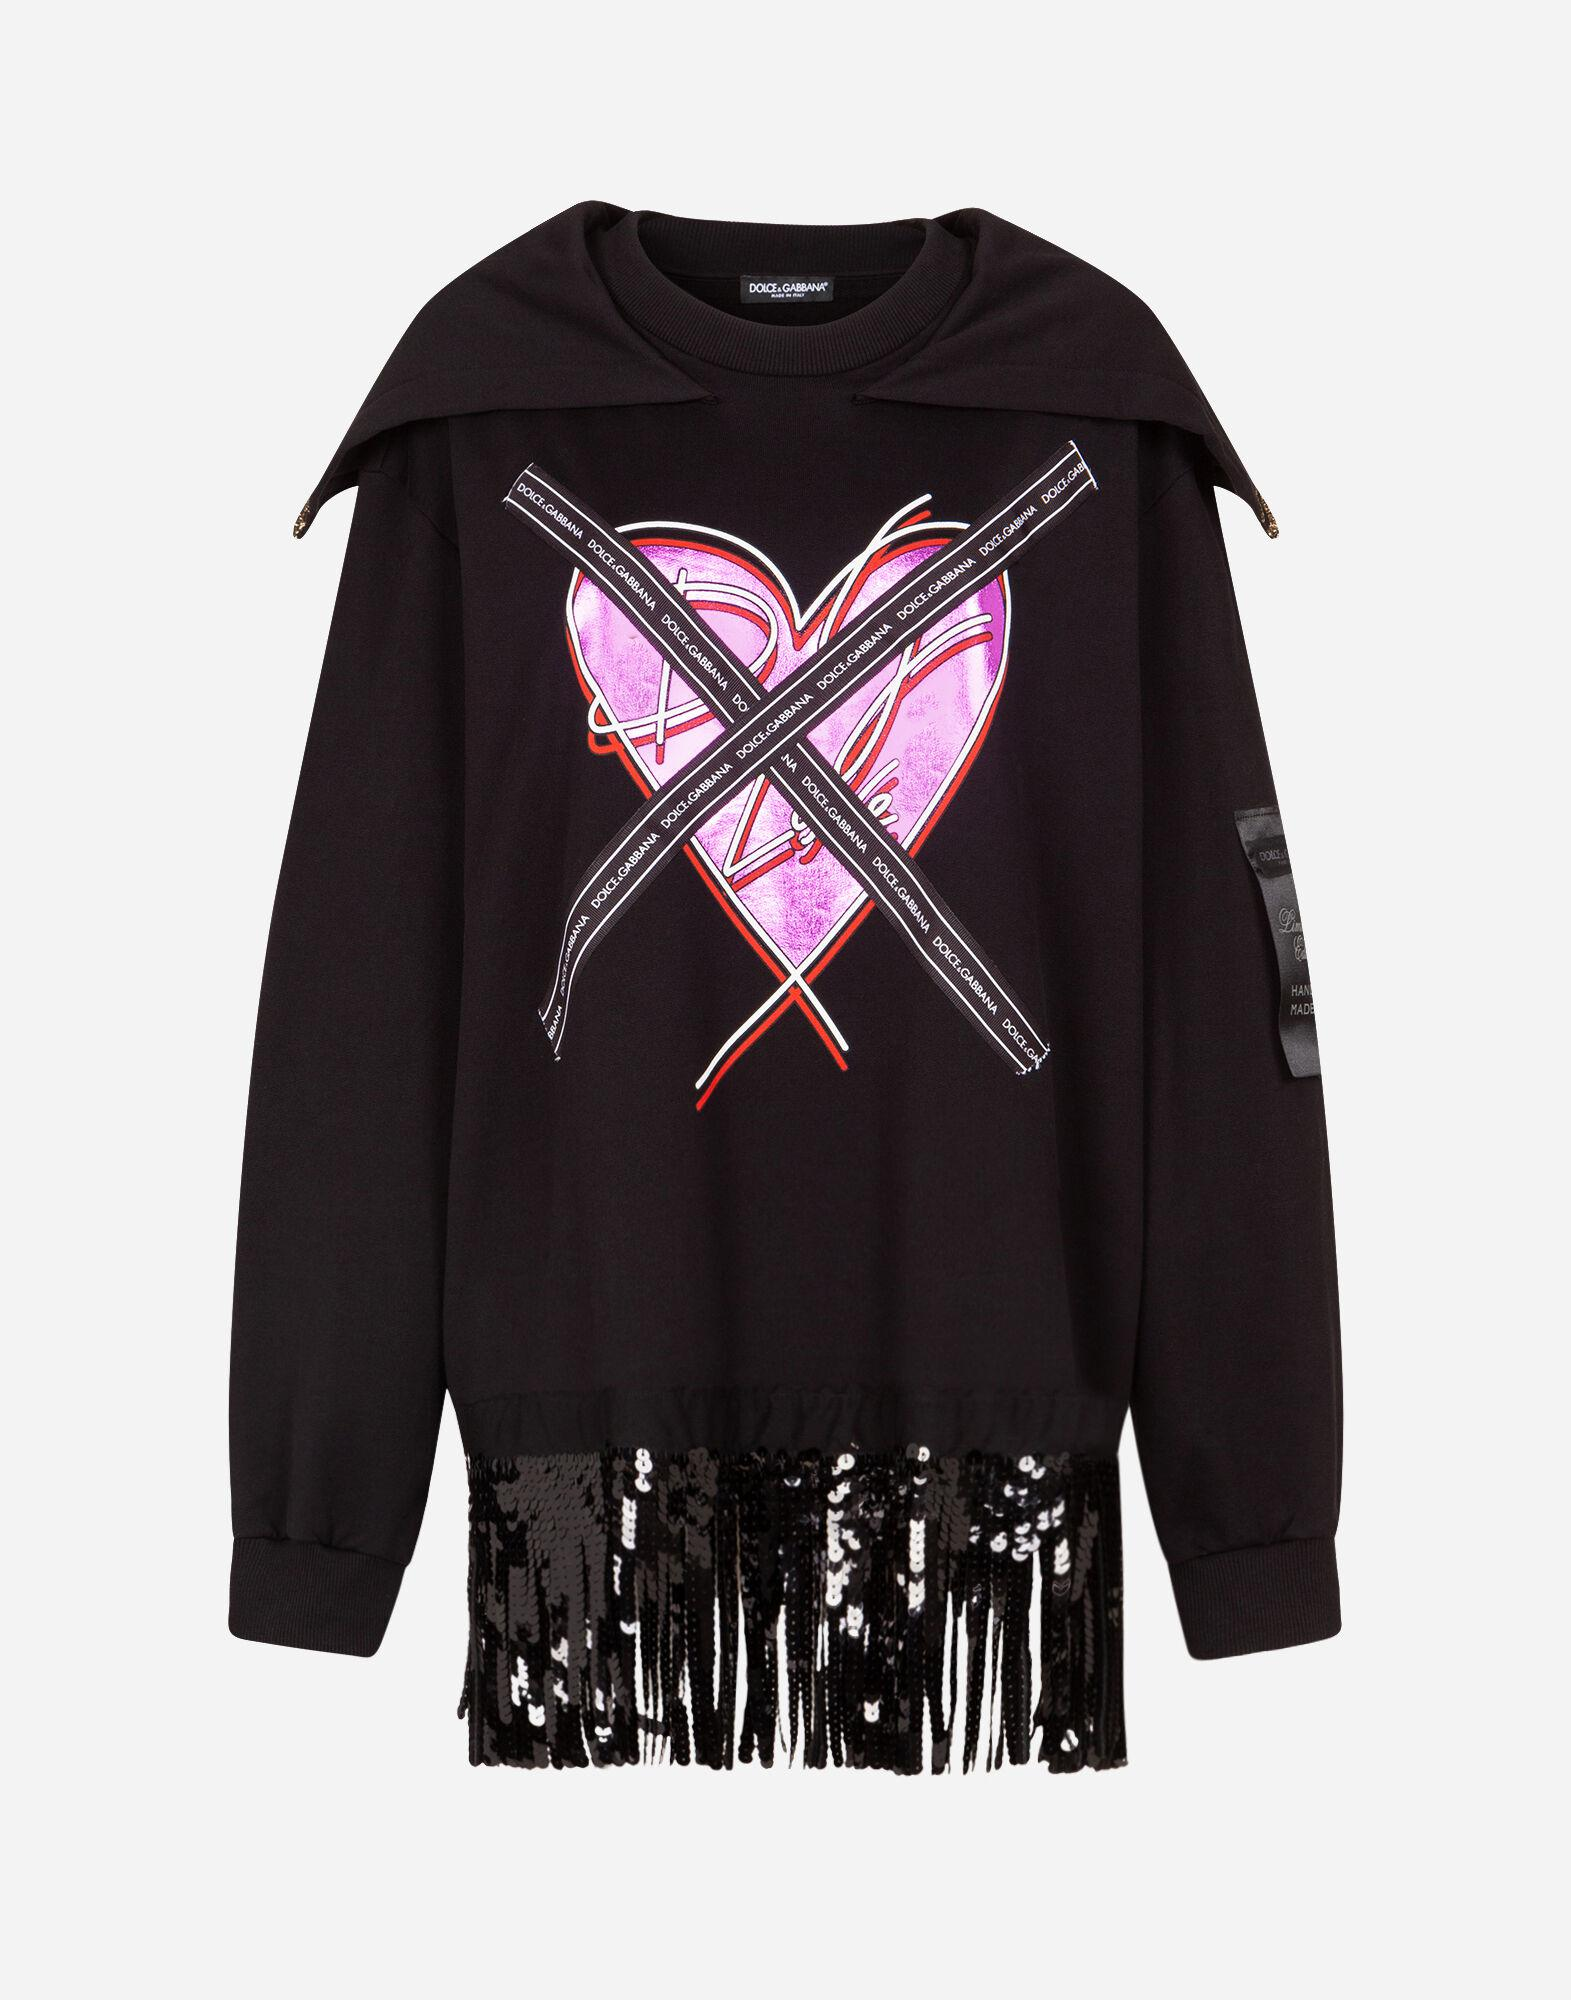 Jersey sweatshirt with heart print and ribbon details 4